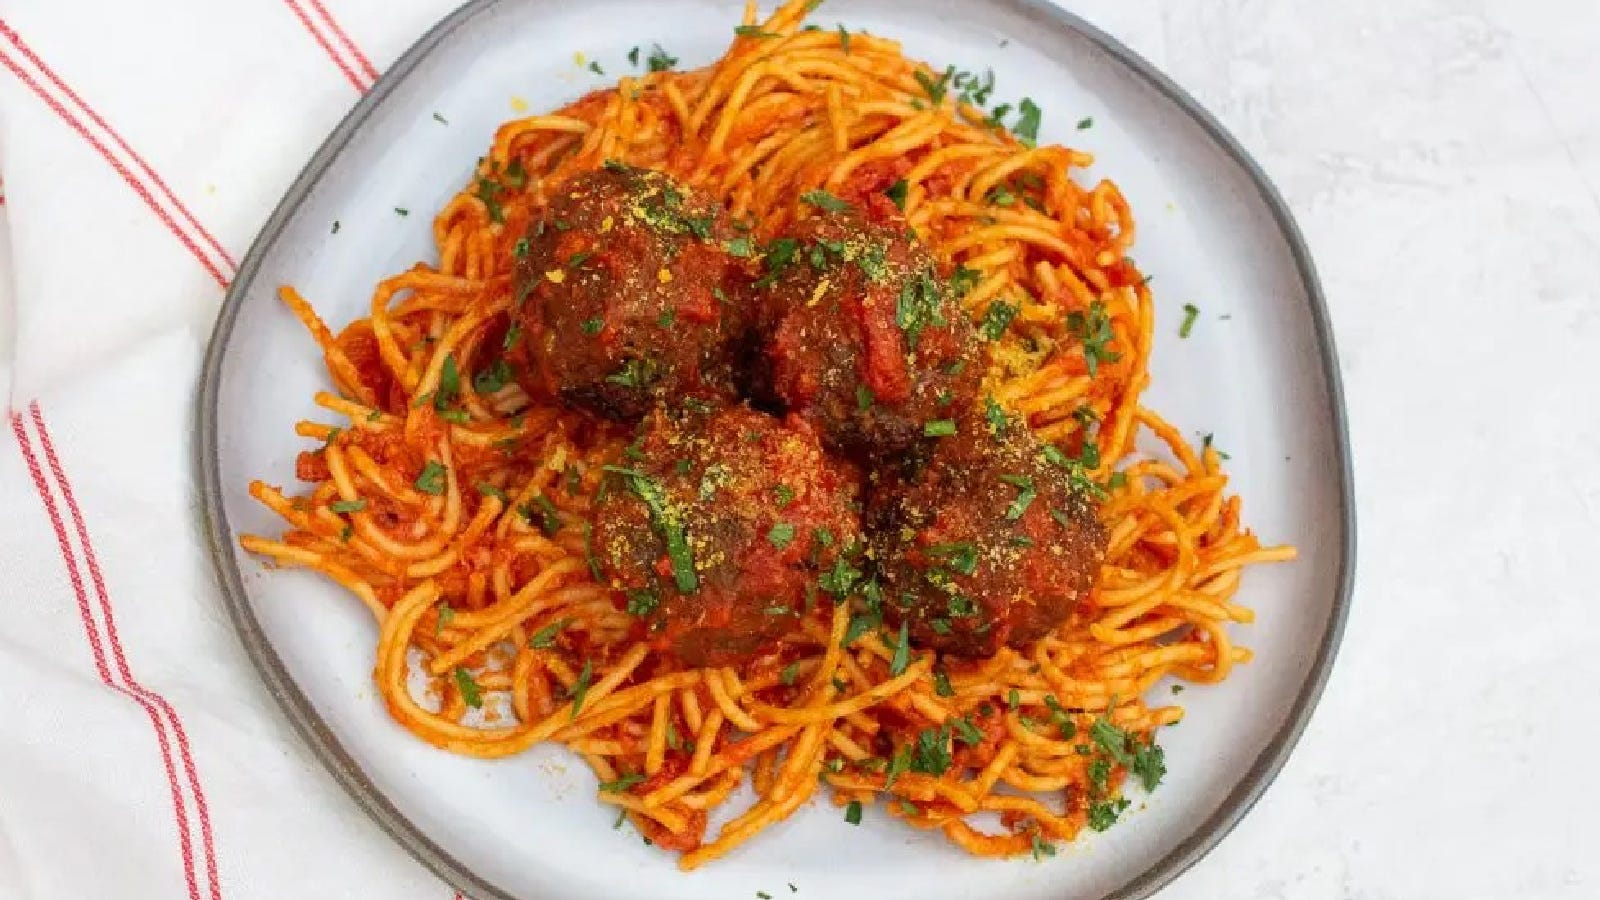 A plate of spaghetti tossed in red sauce topped with air fried meatballs.